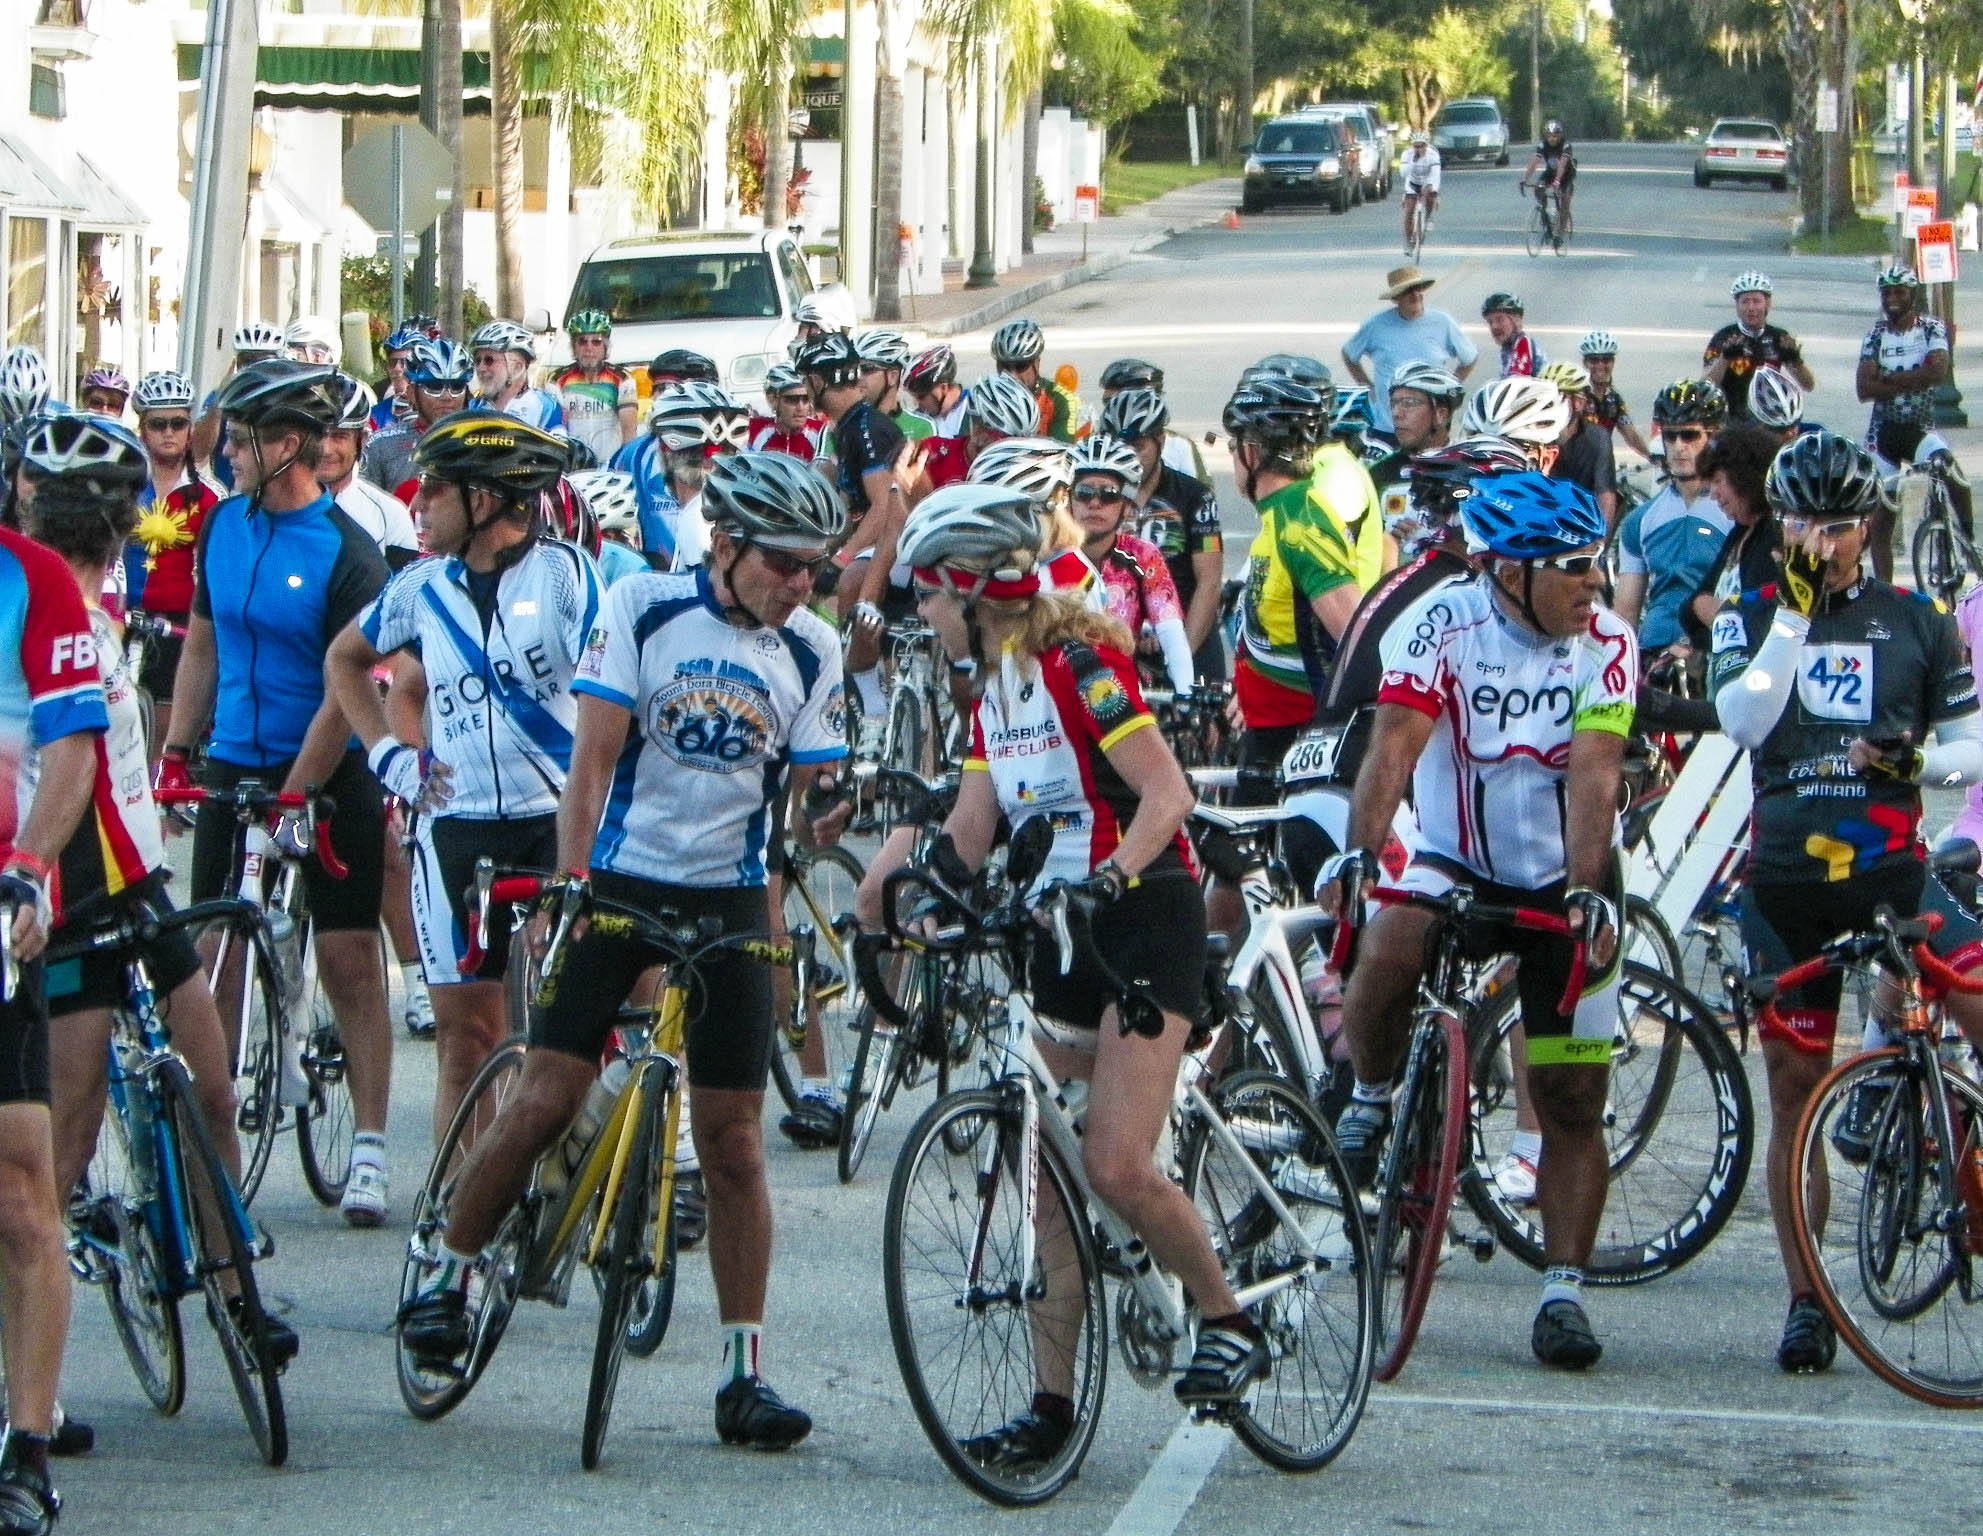 38th Annual Mount Dora Bicycle Festival